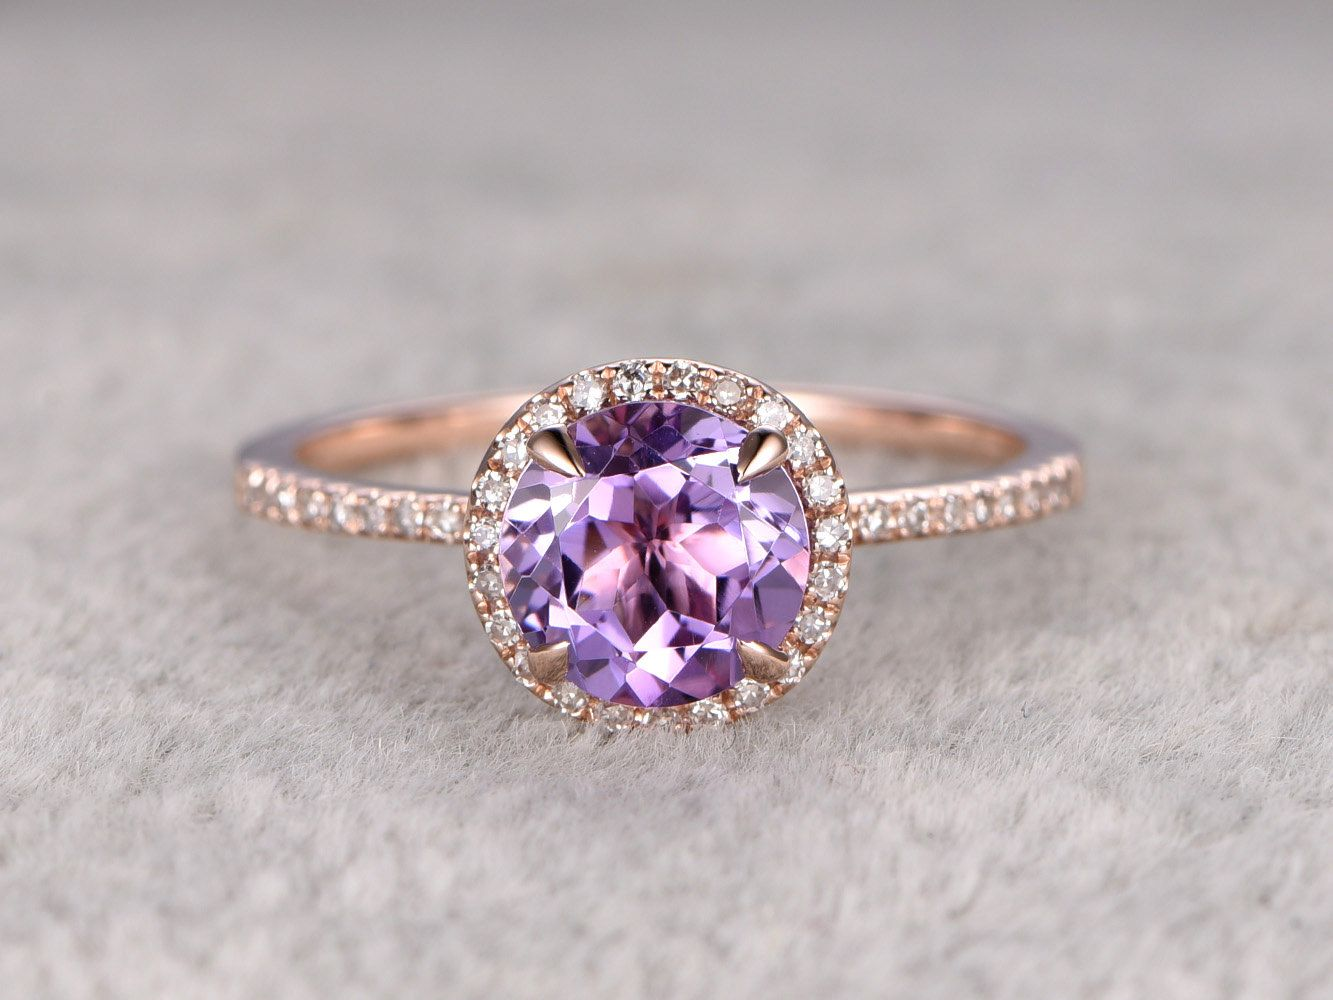 glamour gallery purple main unique colored stones rings wedding colorful gemstone engagement weddings stone